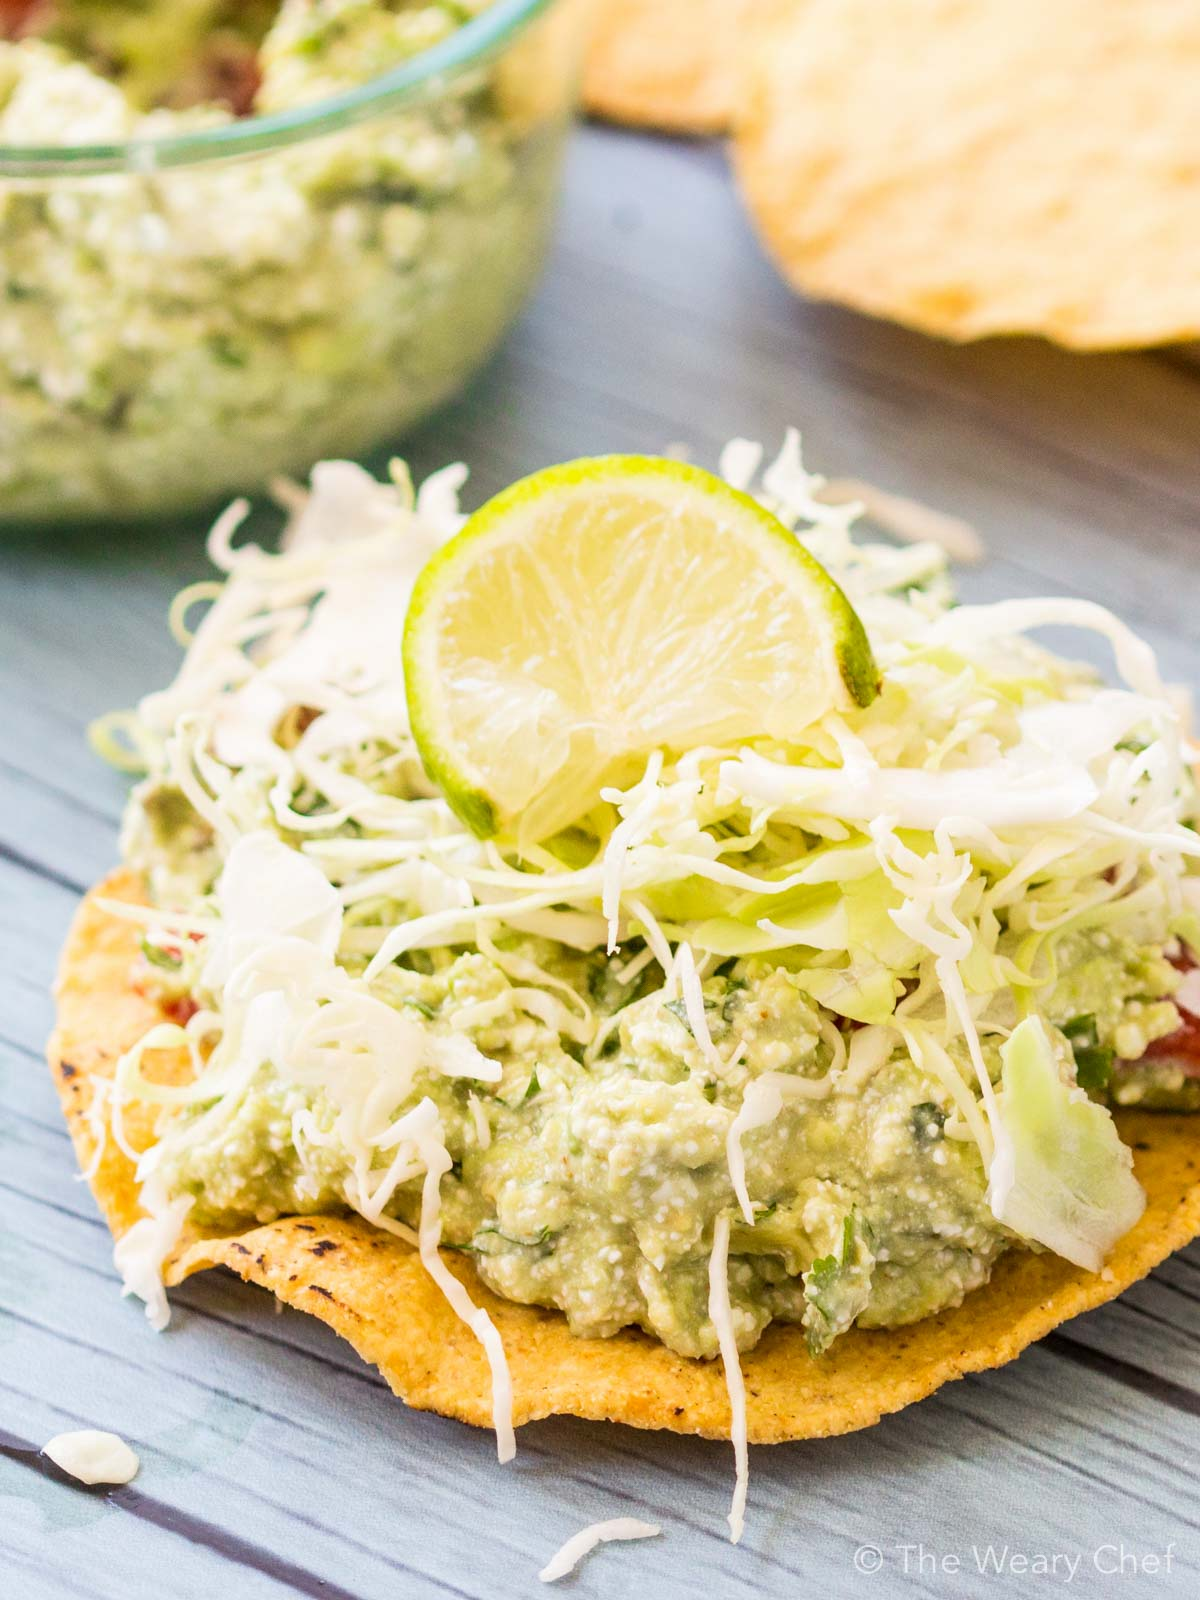 These tasty guacamole tostadas have a sneaky protein source and require NO cooking!